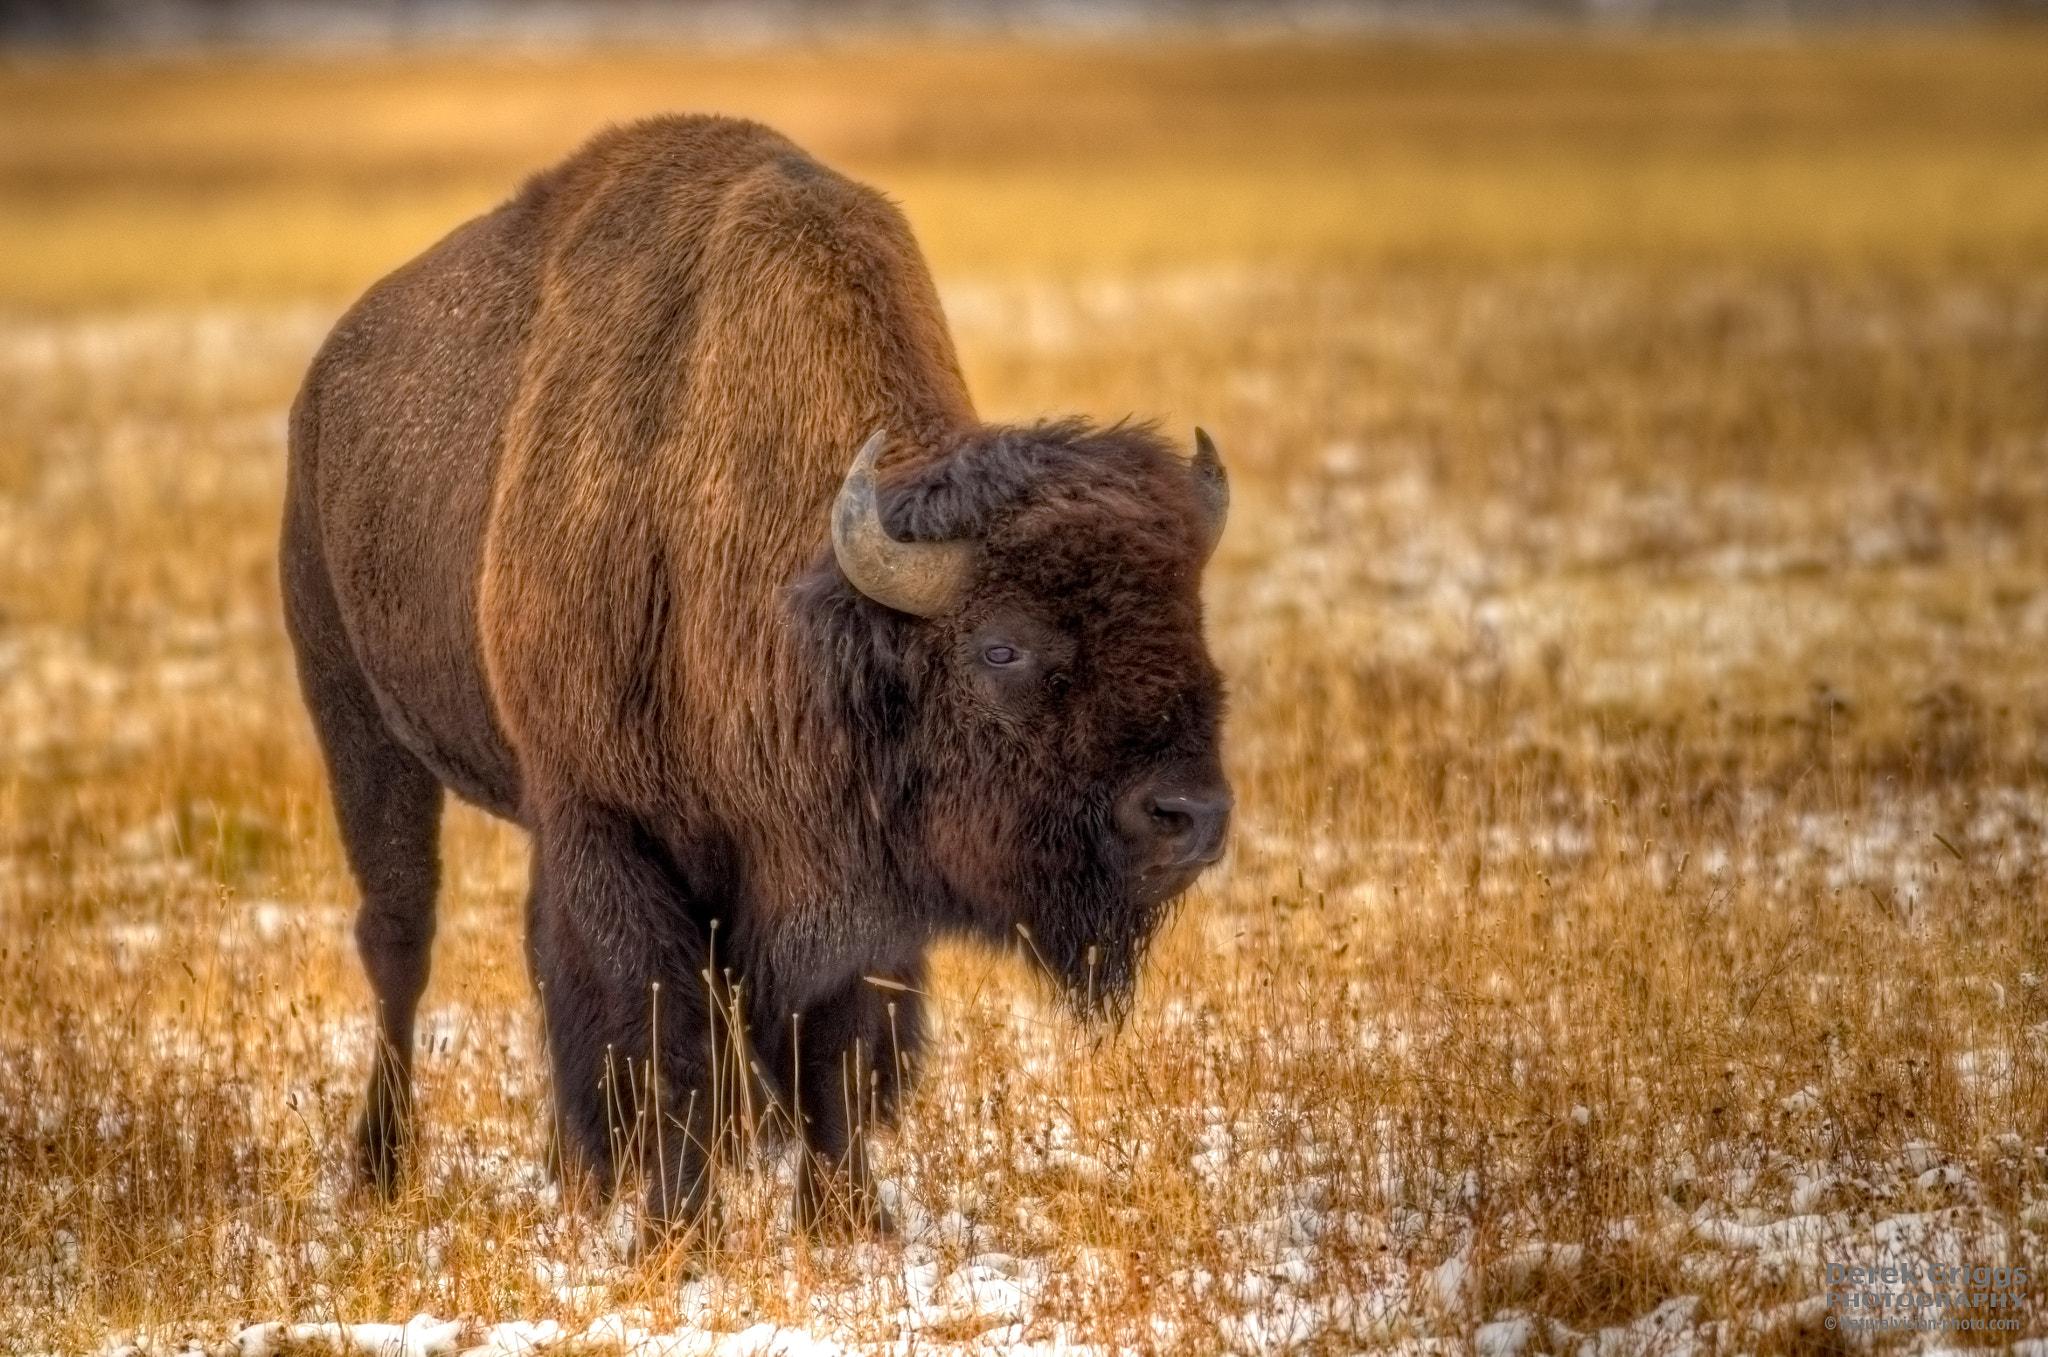 Photograph Yellowstone Bison II by Derek Griggs on 500px